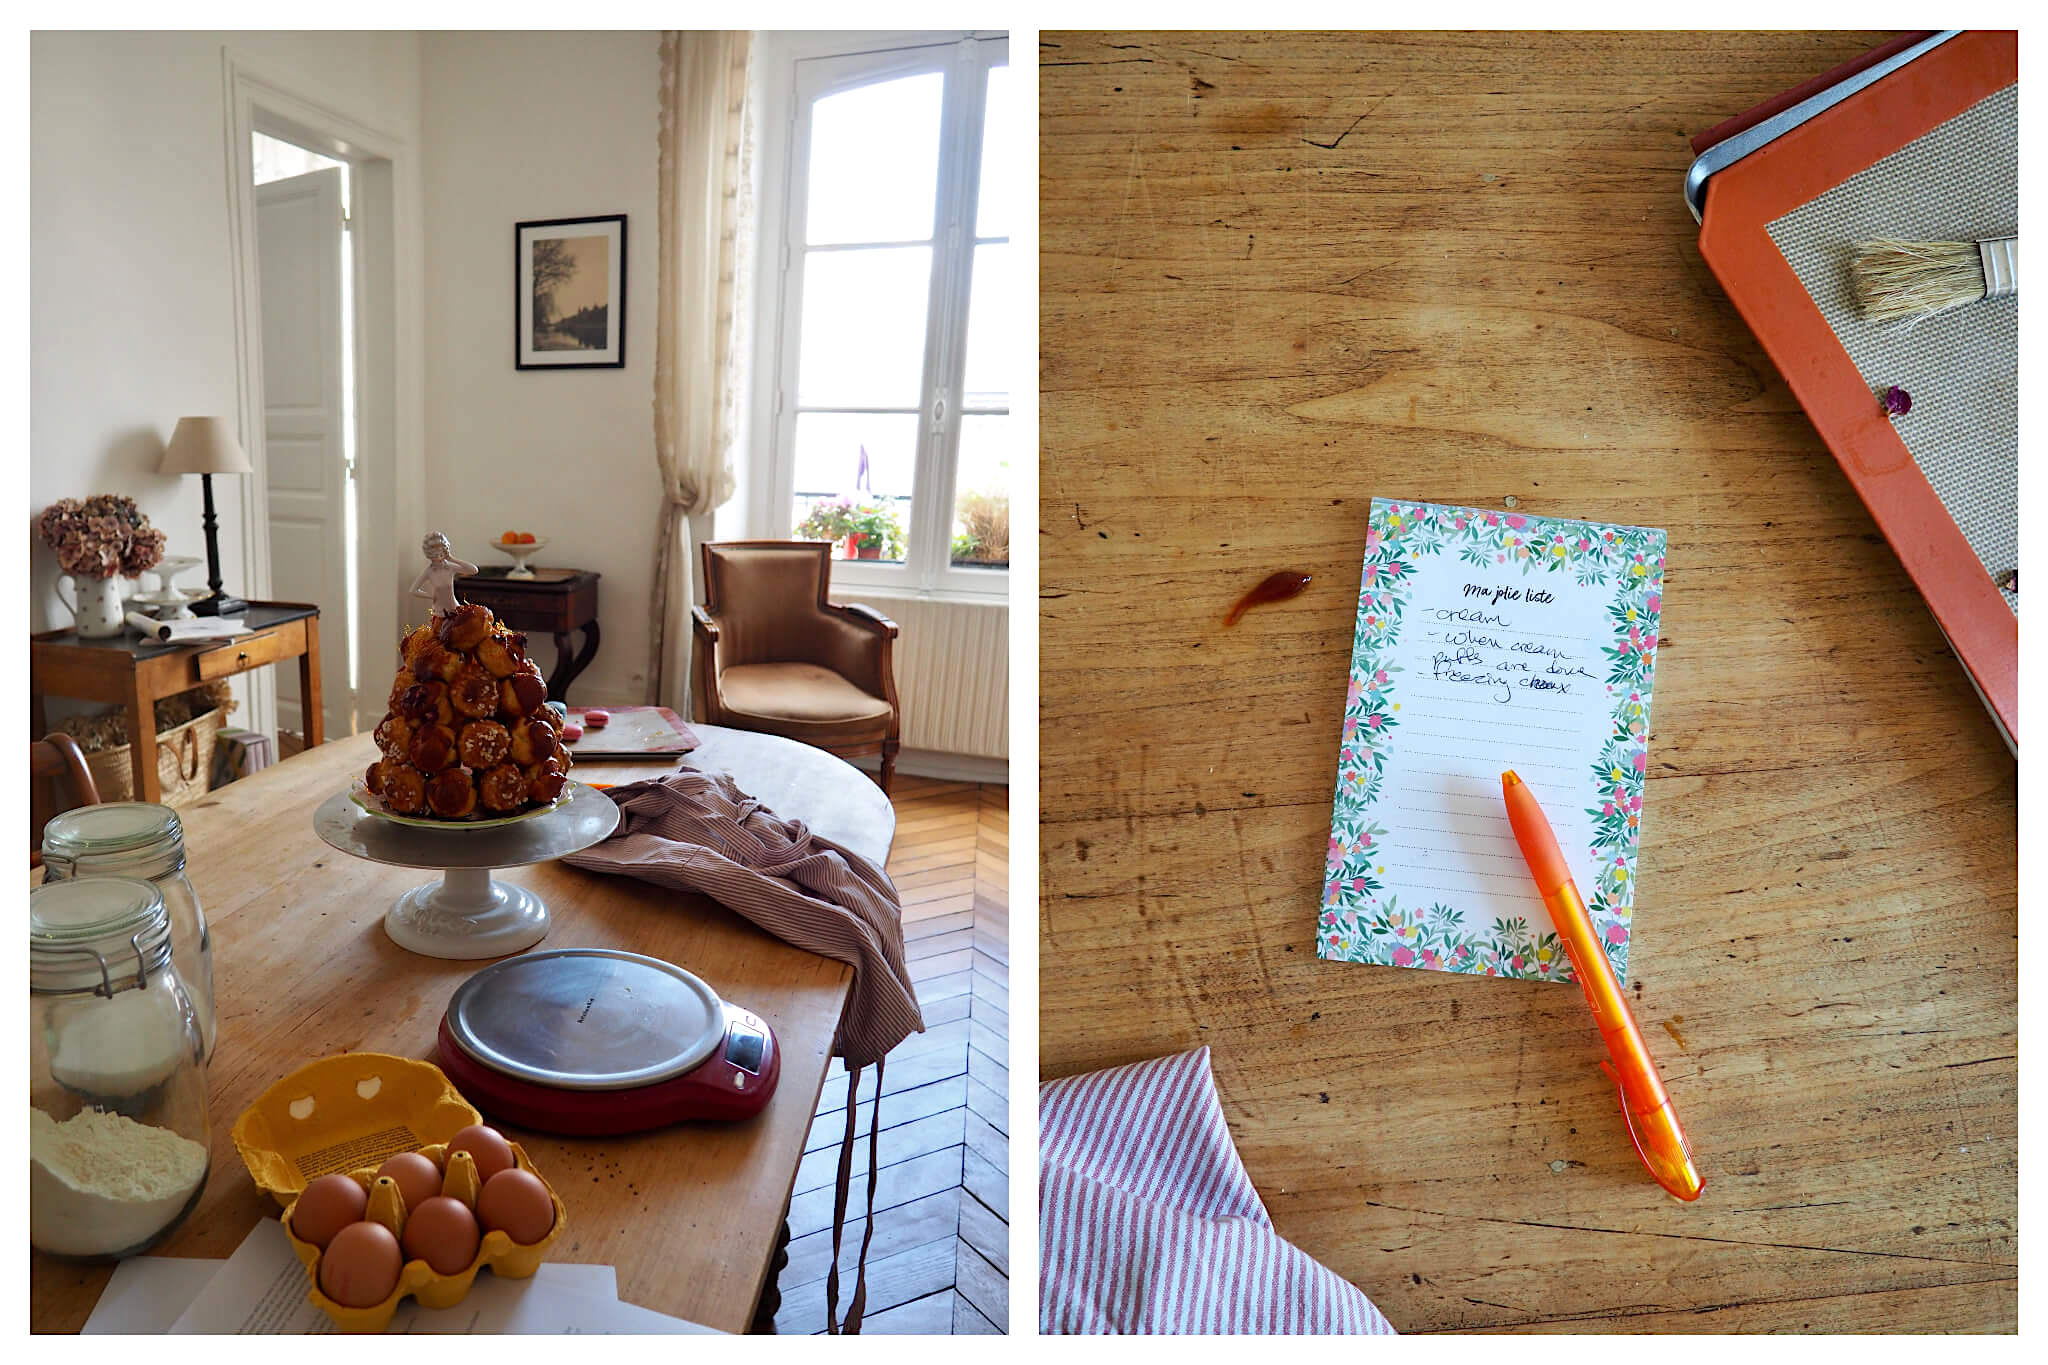 """Left: A croquembouche sits next to baking ingredients, including a jar of flour and and a case of eggs, Right: An orange pen sits atop a floral-printed notebook that has words scribbled on it, including """"cream"""""""